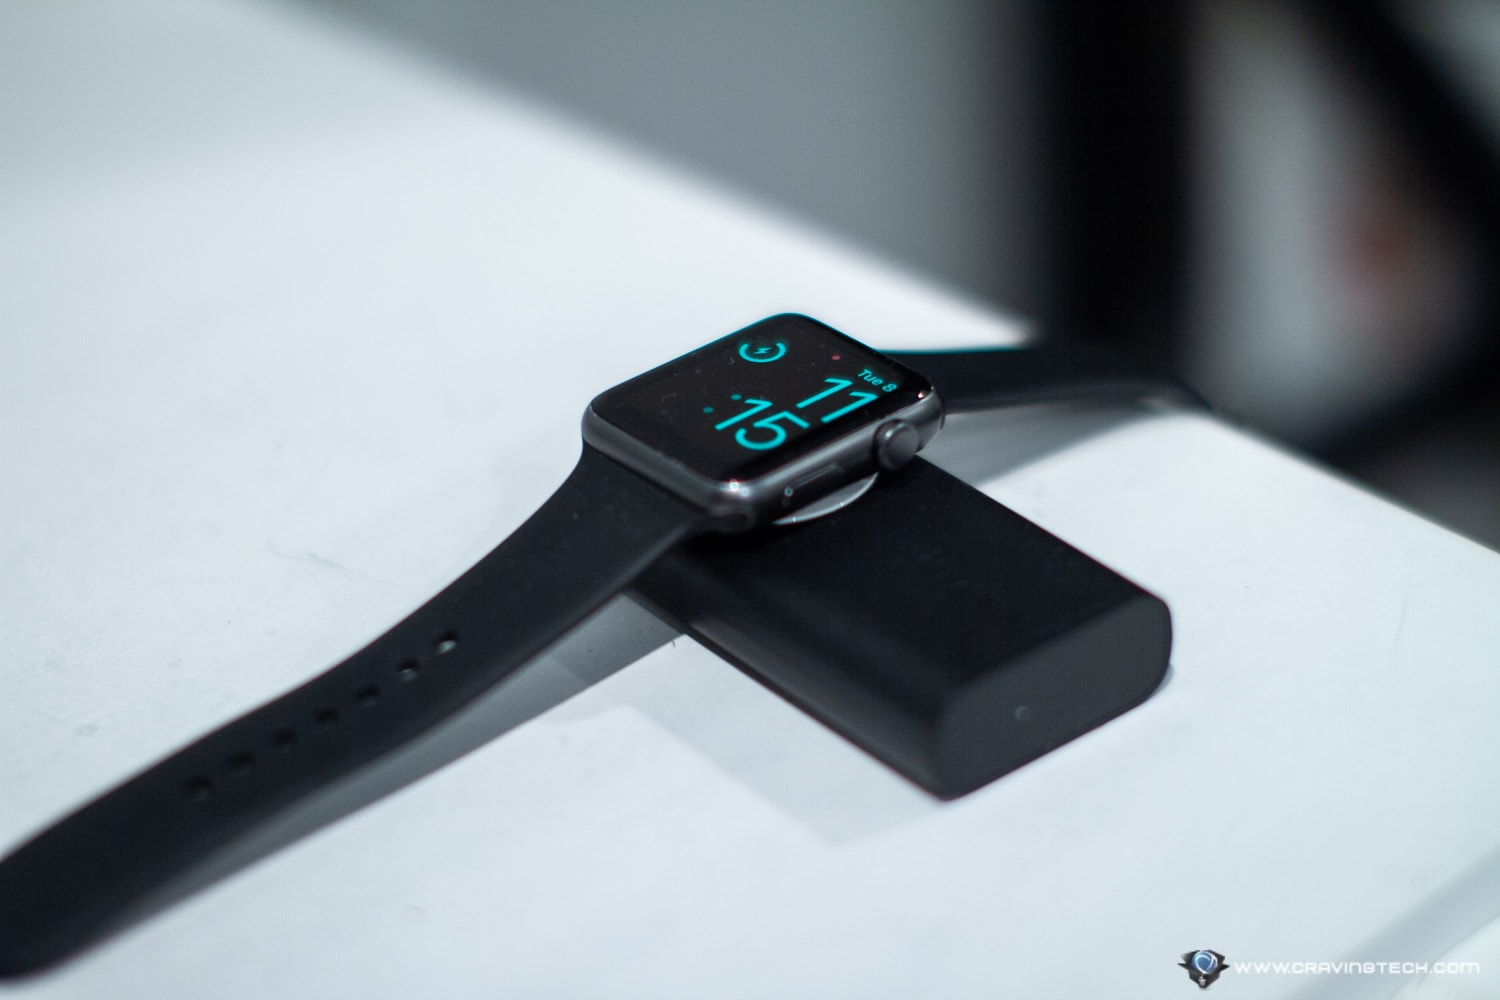 Add up to 63 hours of battery life to Apple Watch with this power bank